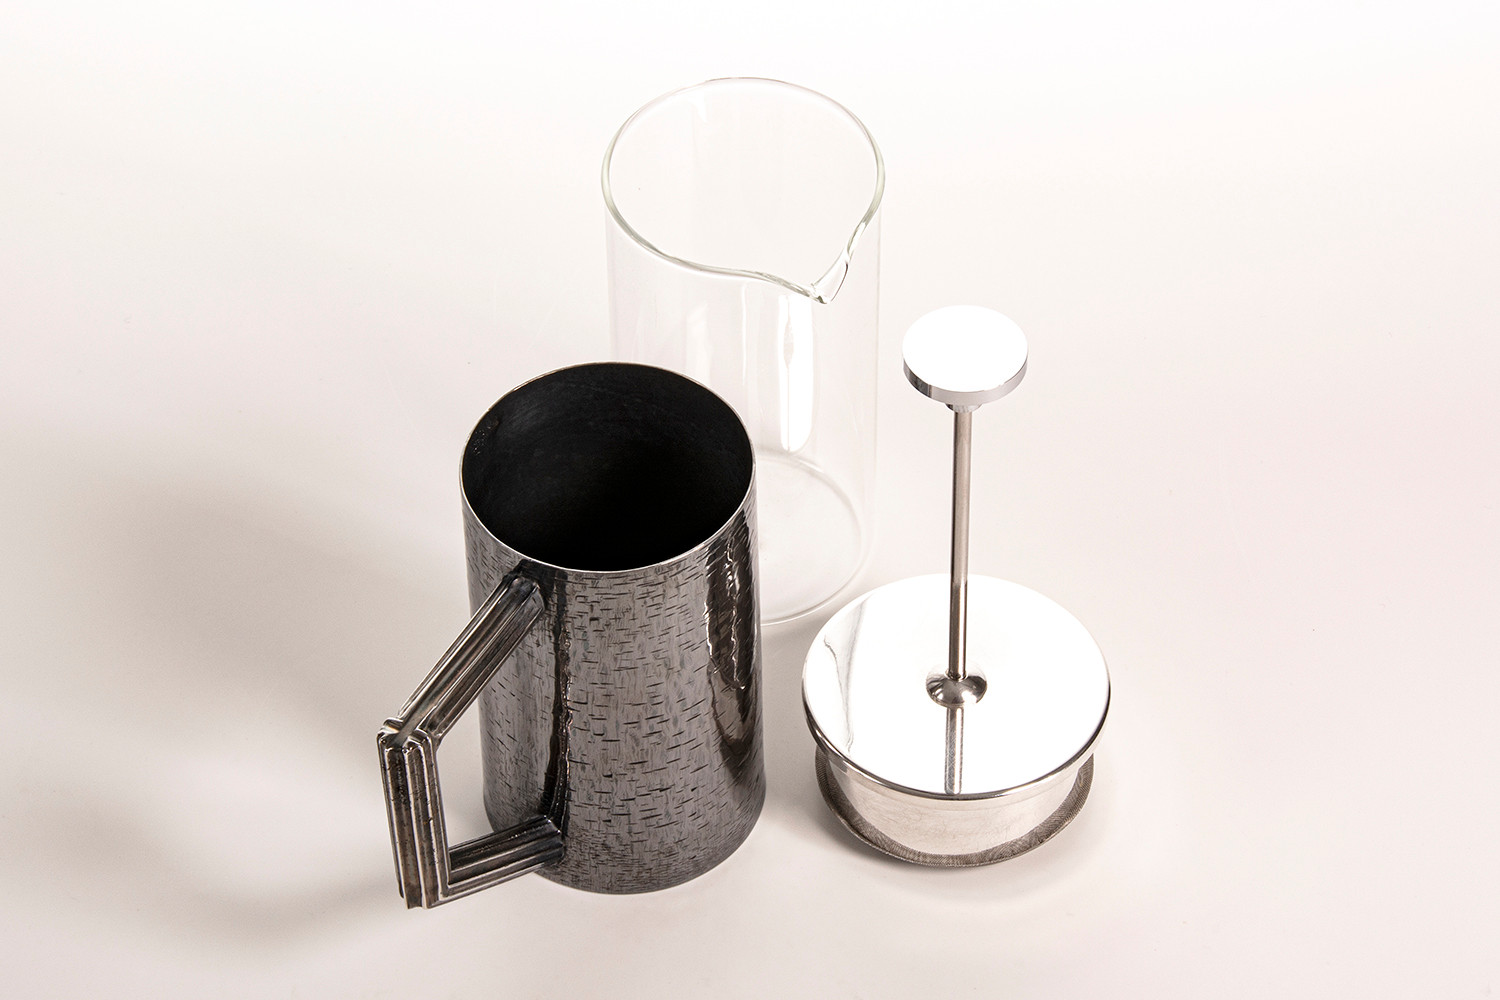 Hand Fabricated & Engraved Cafetiere, 2019